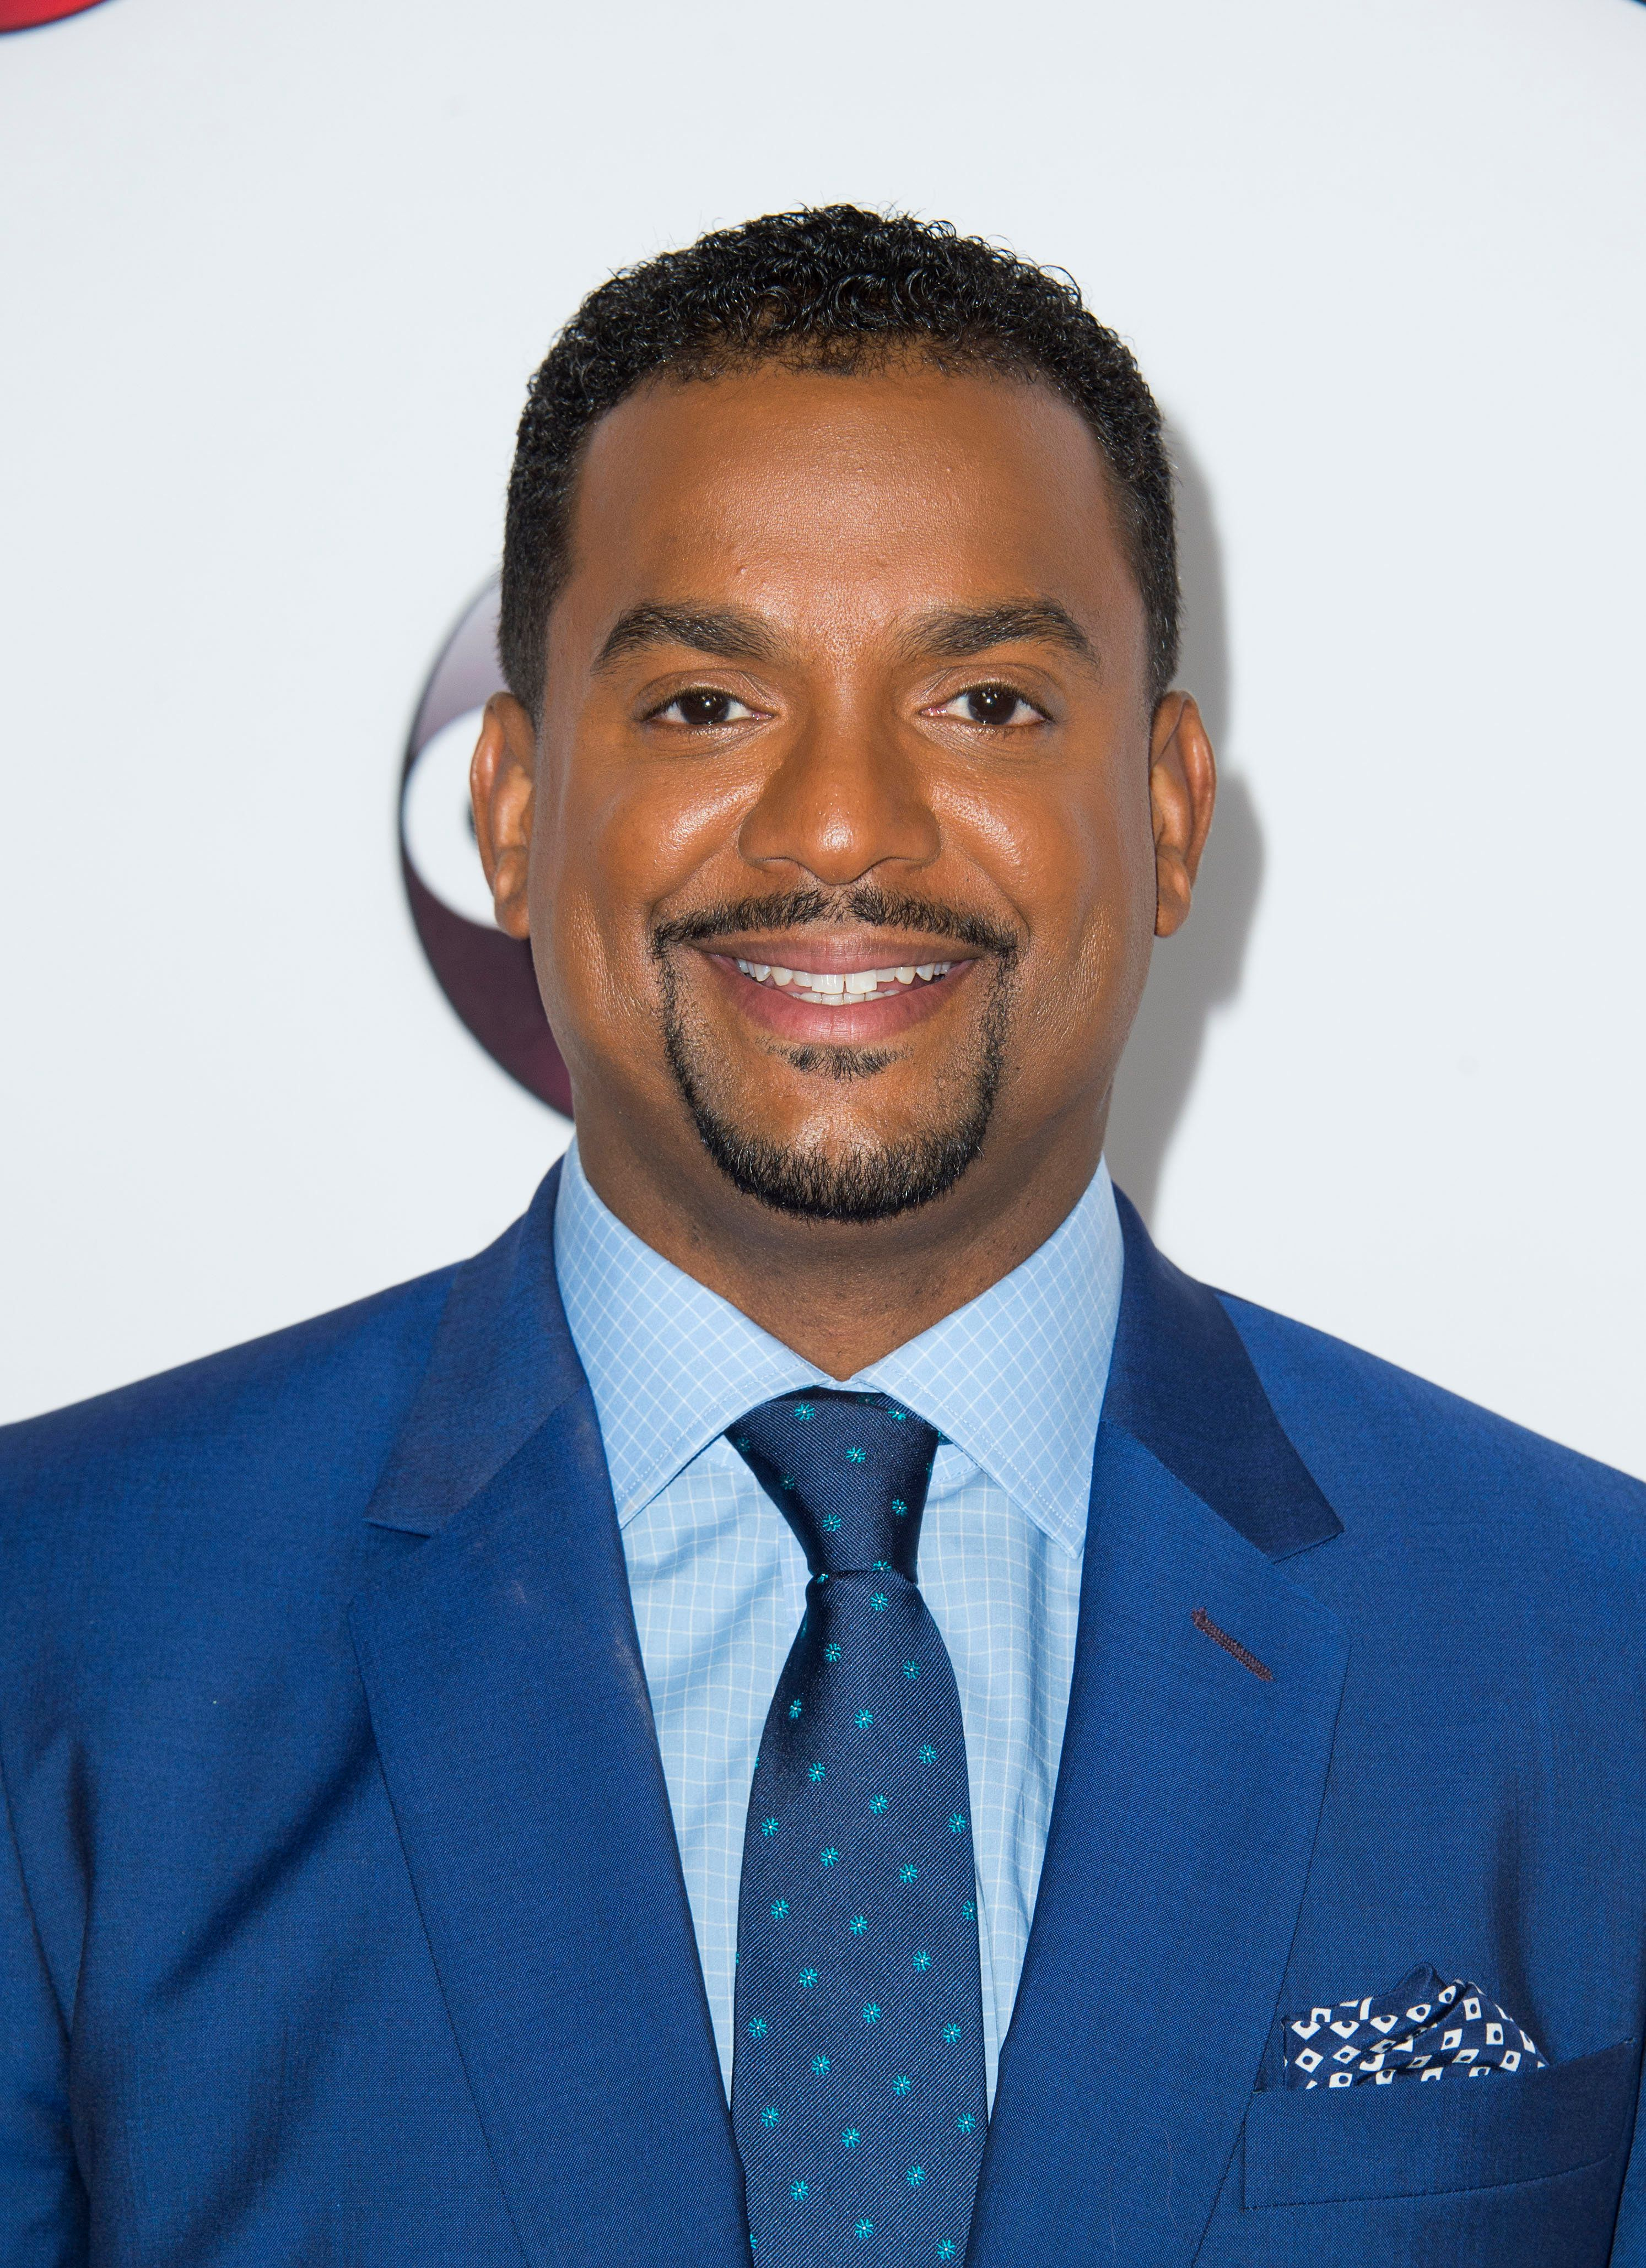 Actor Alfonso Ribeiro attends the Disney ABC Television TCA Winter Press Tour,  in Pasadena, California, on January 9, 2016.AFP PHOTO /VALERIE MACON / AFP / VALERIE MACON        (Photo credit should read VALERIE MACON/AFP/Getty Images)